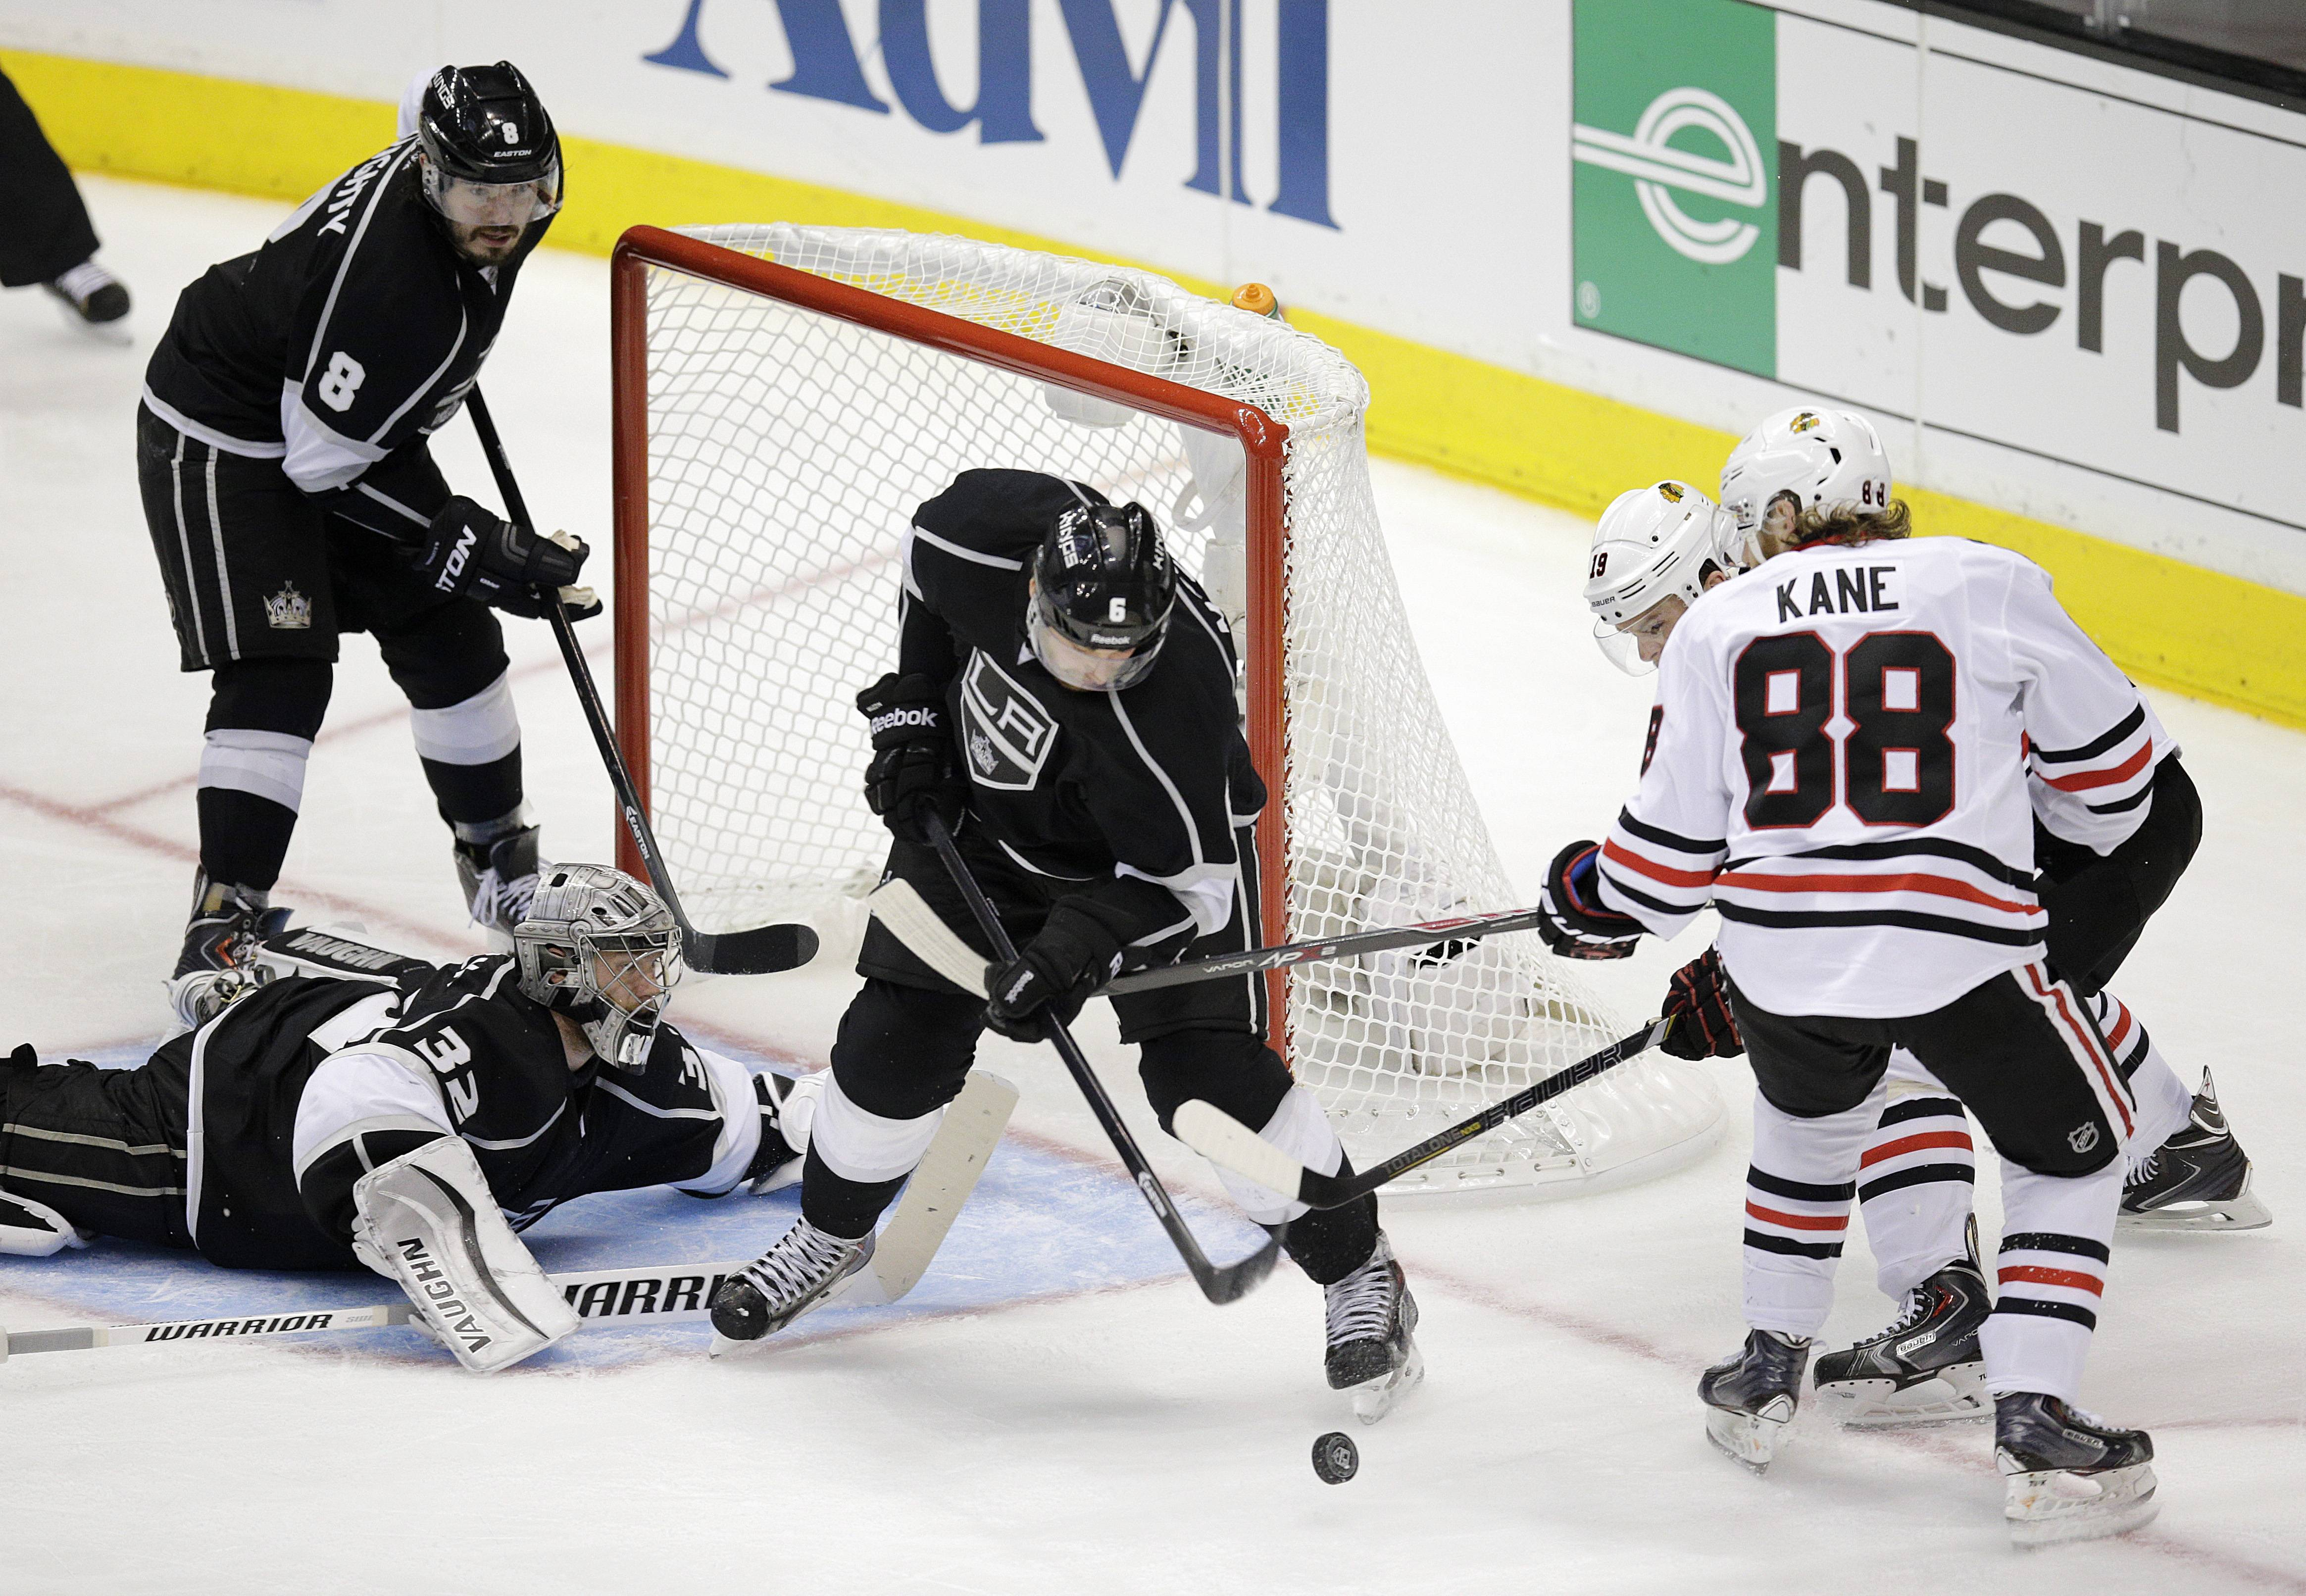 Los Angeles Kings goalie Jonathan Quick (32) watches as Jake Muzzin (6) defends Chicago Blackhawks' Patrick Kane (88) and Jonathan Toews (19) during the third period of Game 4.